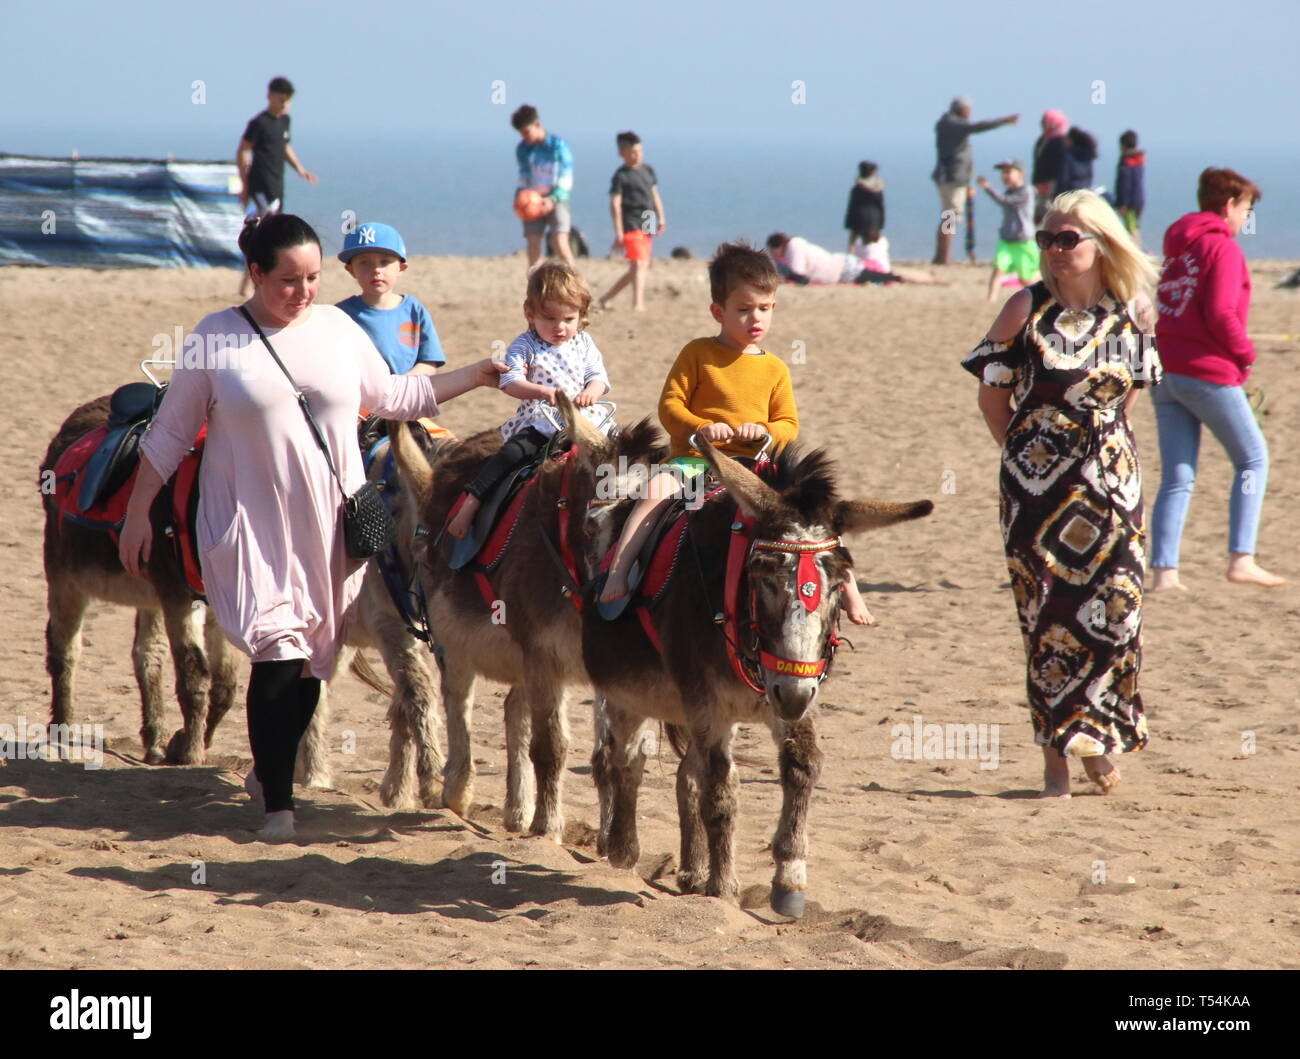 Skegness, UK. 20th Apr, 2019. Children seen riding the donkeys on the beach led in groups at walking pace during Easter. People enjoy the unseasonably warm Easter weather in the UK - especially the children having donkey rides on the sandy beach at Skegness. The traditional seaside attraction started in Victorian times, but is now seen much less in the major resorts, but is still popular on the Lincolnshire beaches of Skegness, Mablethorpe and Ingoldmells. Credit: SOPA Images Limited/Alamy Live News Stock Photo